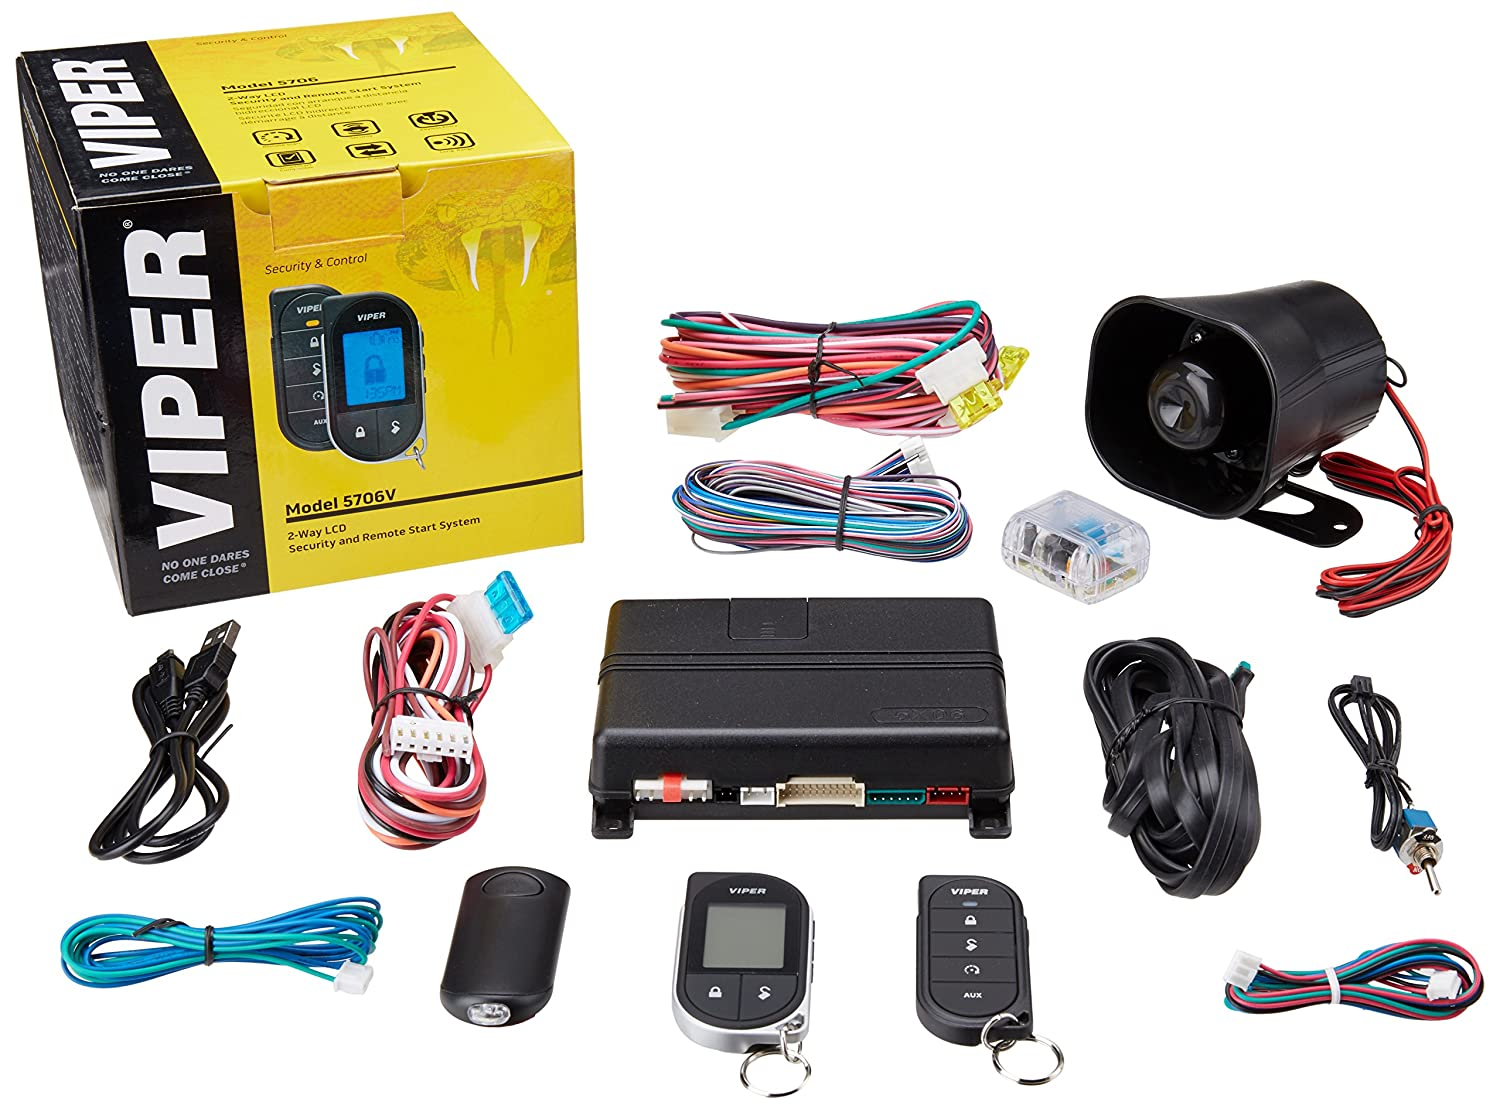 amazon com viper 5706v 2 way car security with remote start system audiovox car alarm installation manual amazon com viper 5706v 2 way car security with remote start system cell phones & accessories